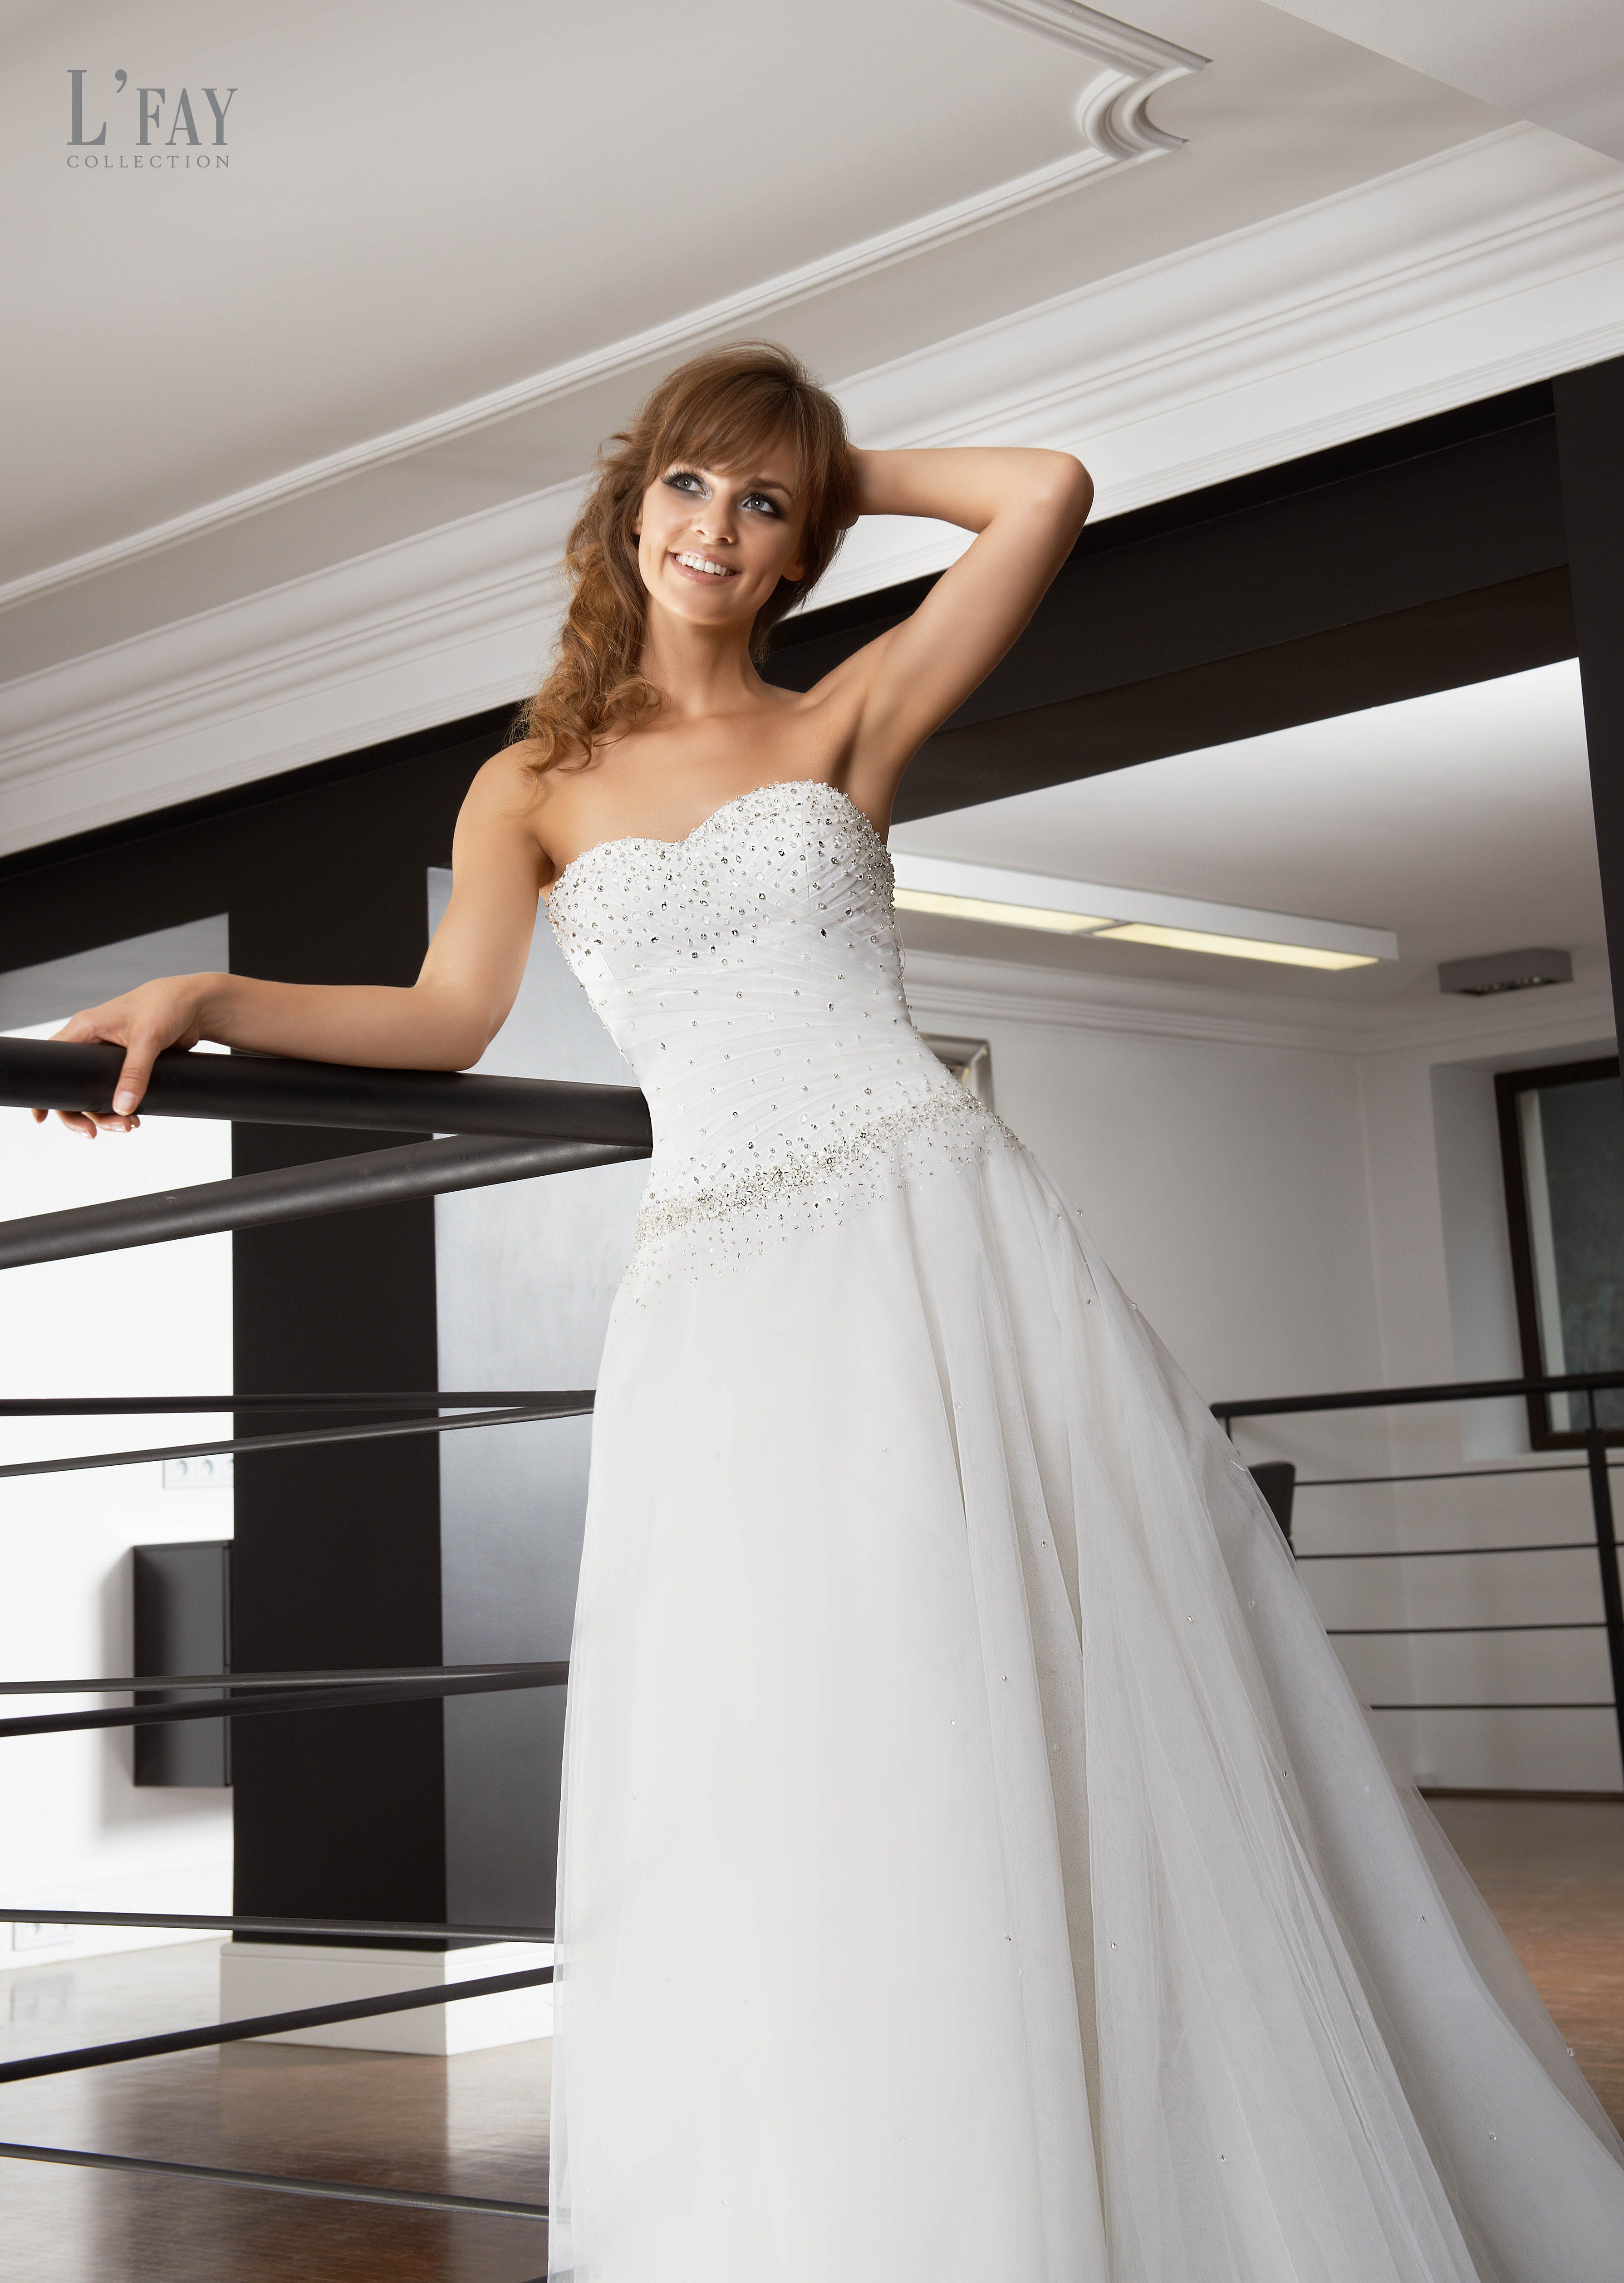 Milly   L'Fay Collection   Designer wedding gowns, Wedding gowns ...